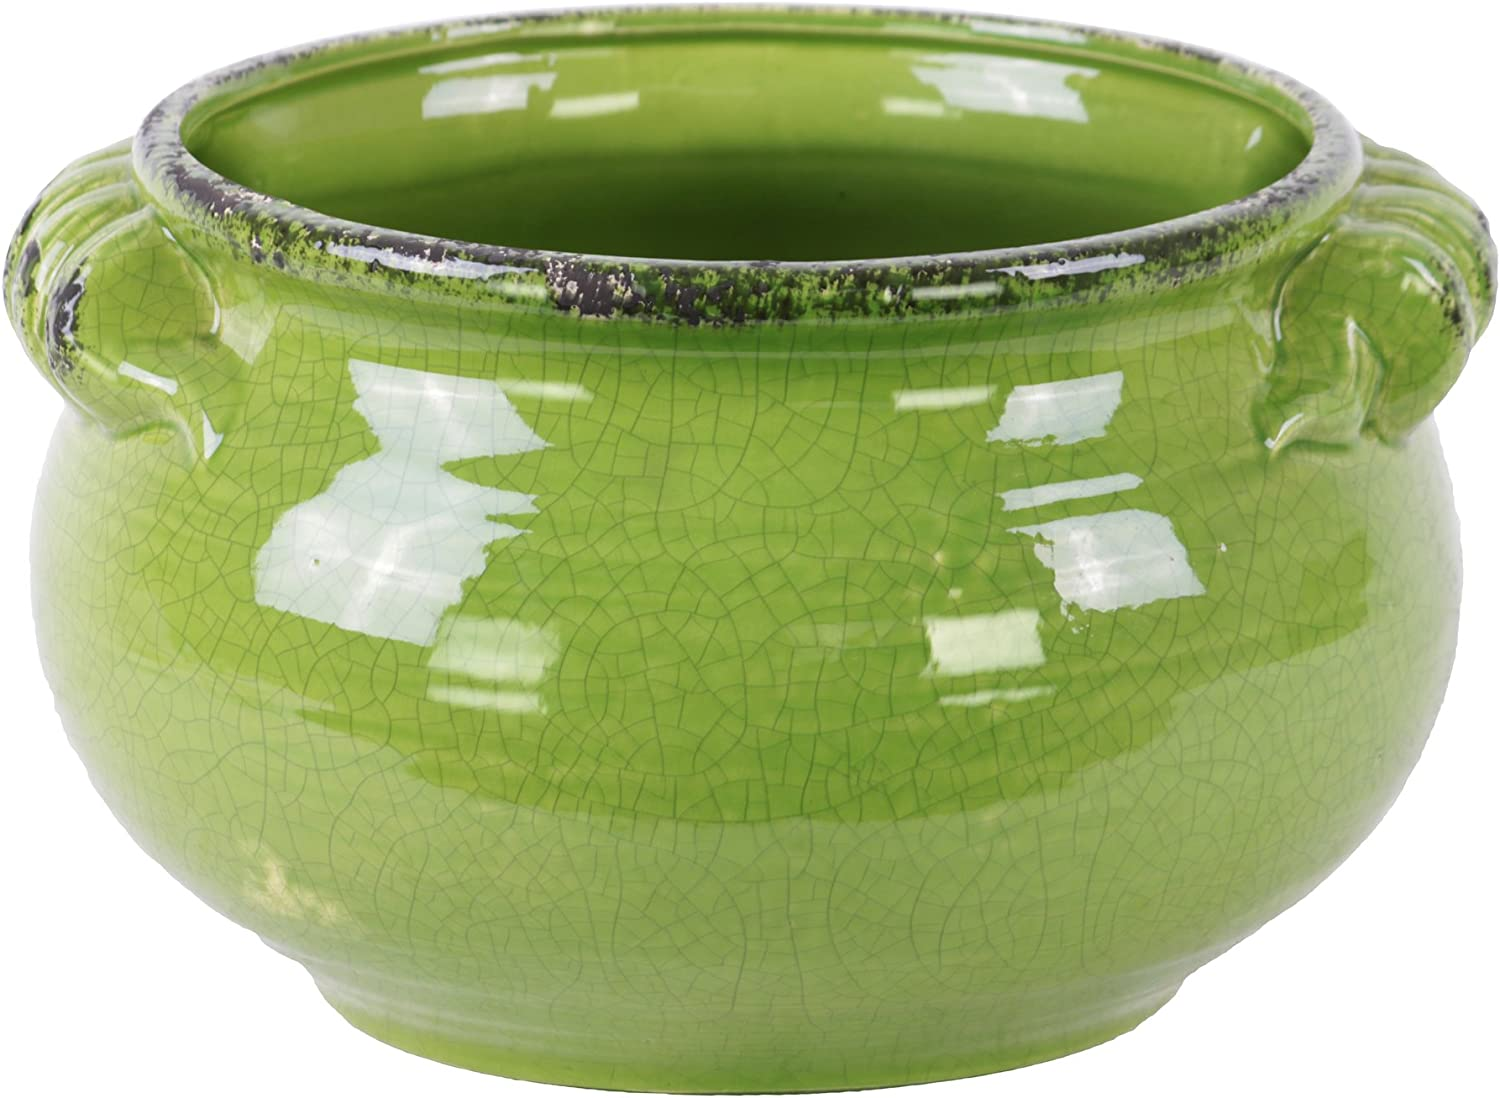 Urban Trends 31827 Ceramic Wide Round Bellied Ranking Max 51% OFF TOP7 with Ha Pot Tuscan